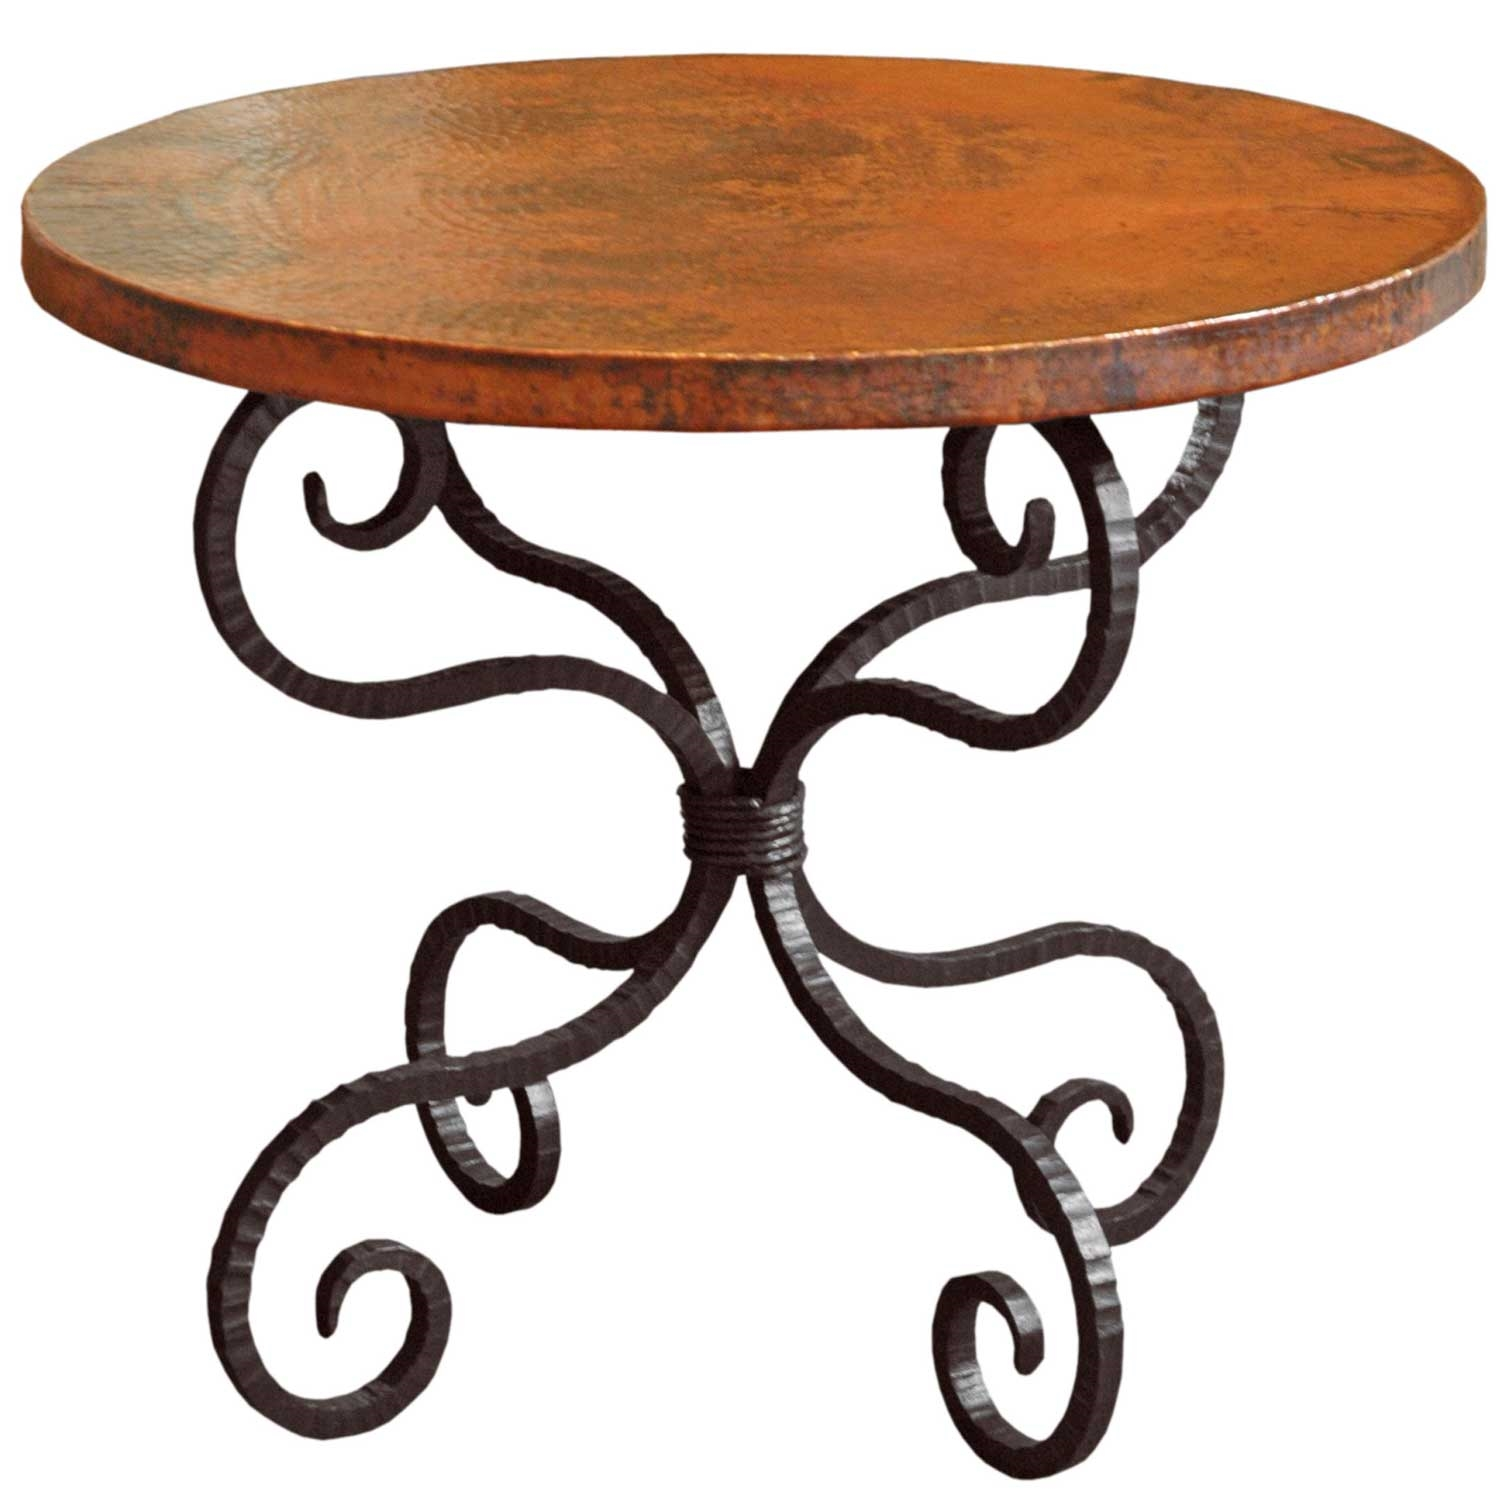 Alexander Wrought Iron End Table With In Round Top Timeless - 30 inch table base